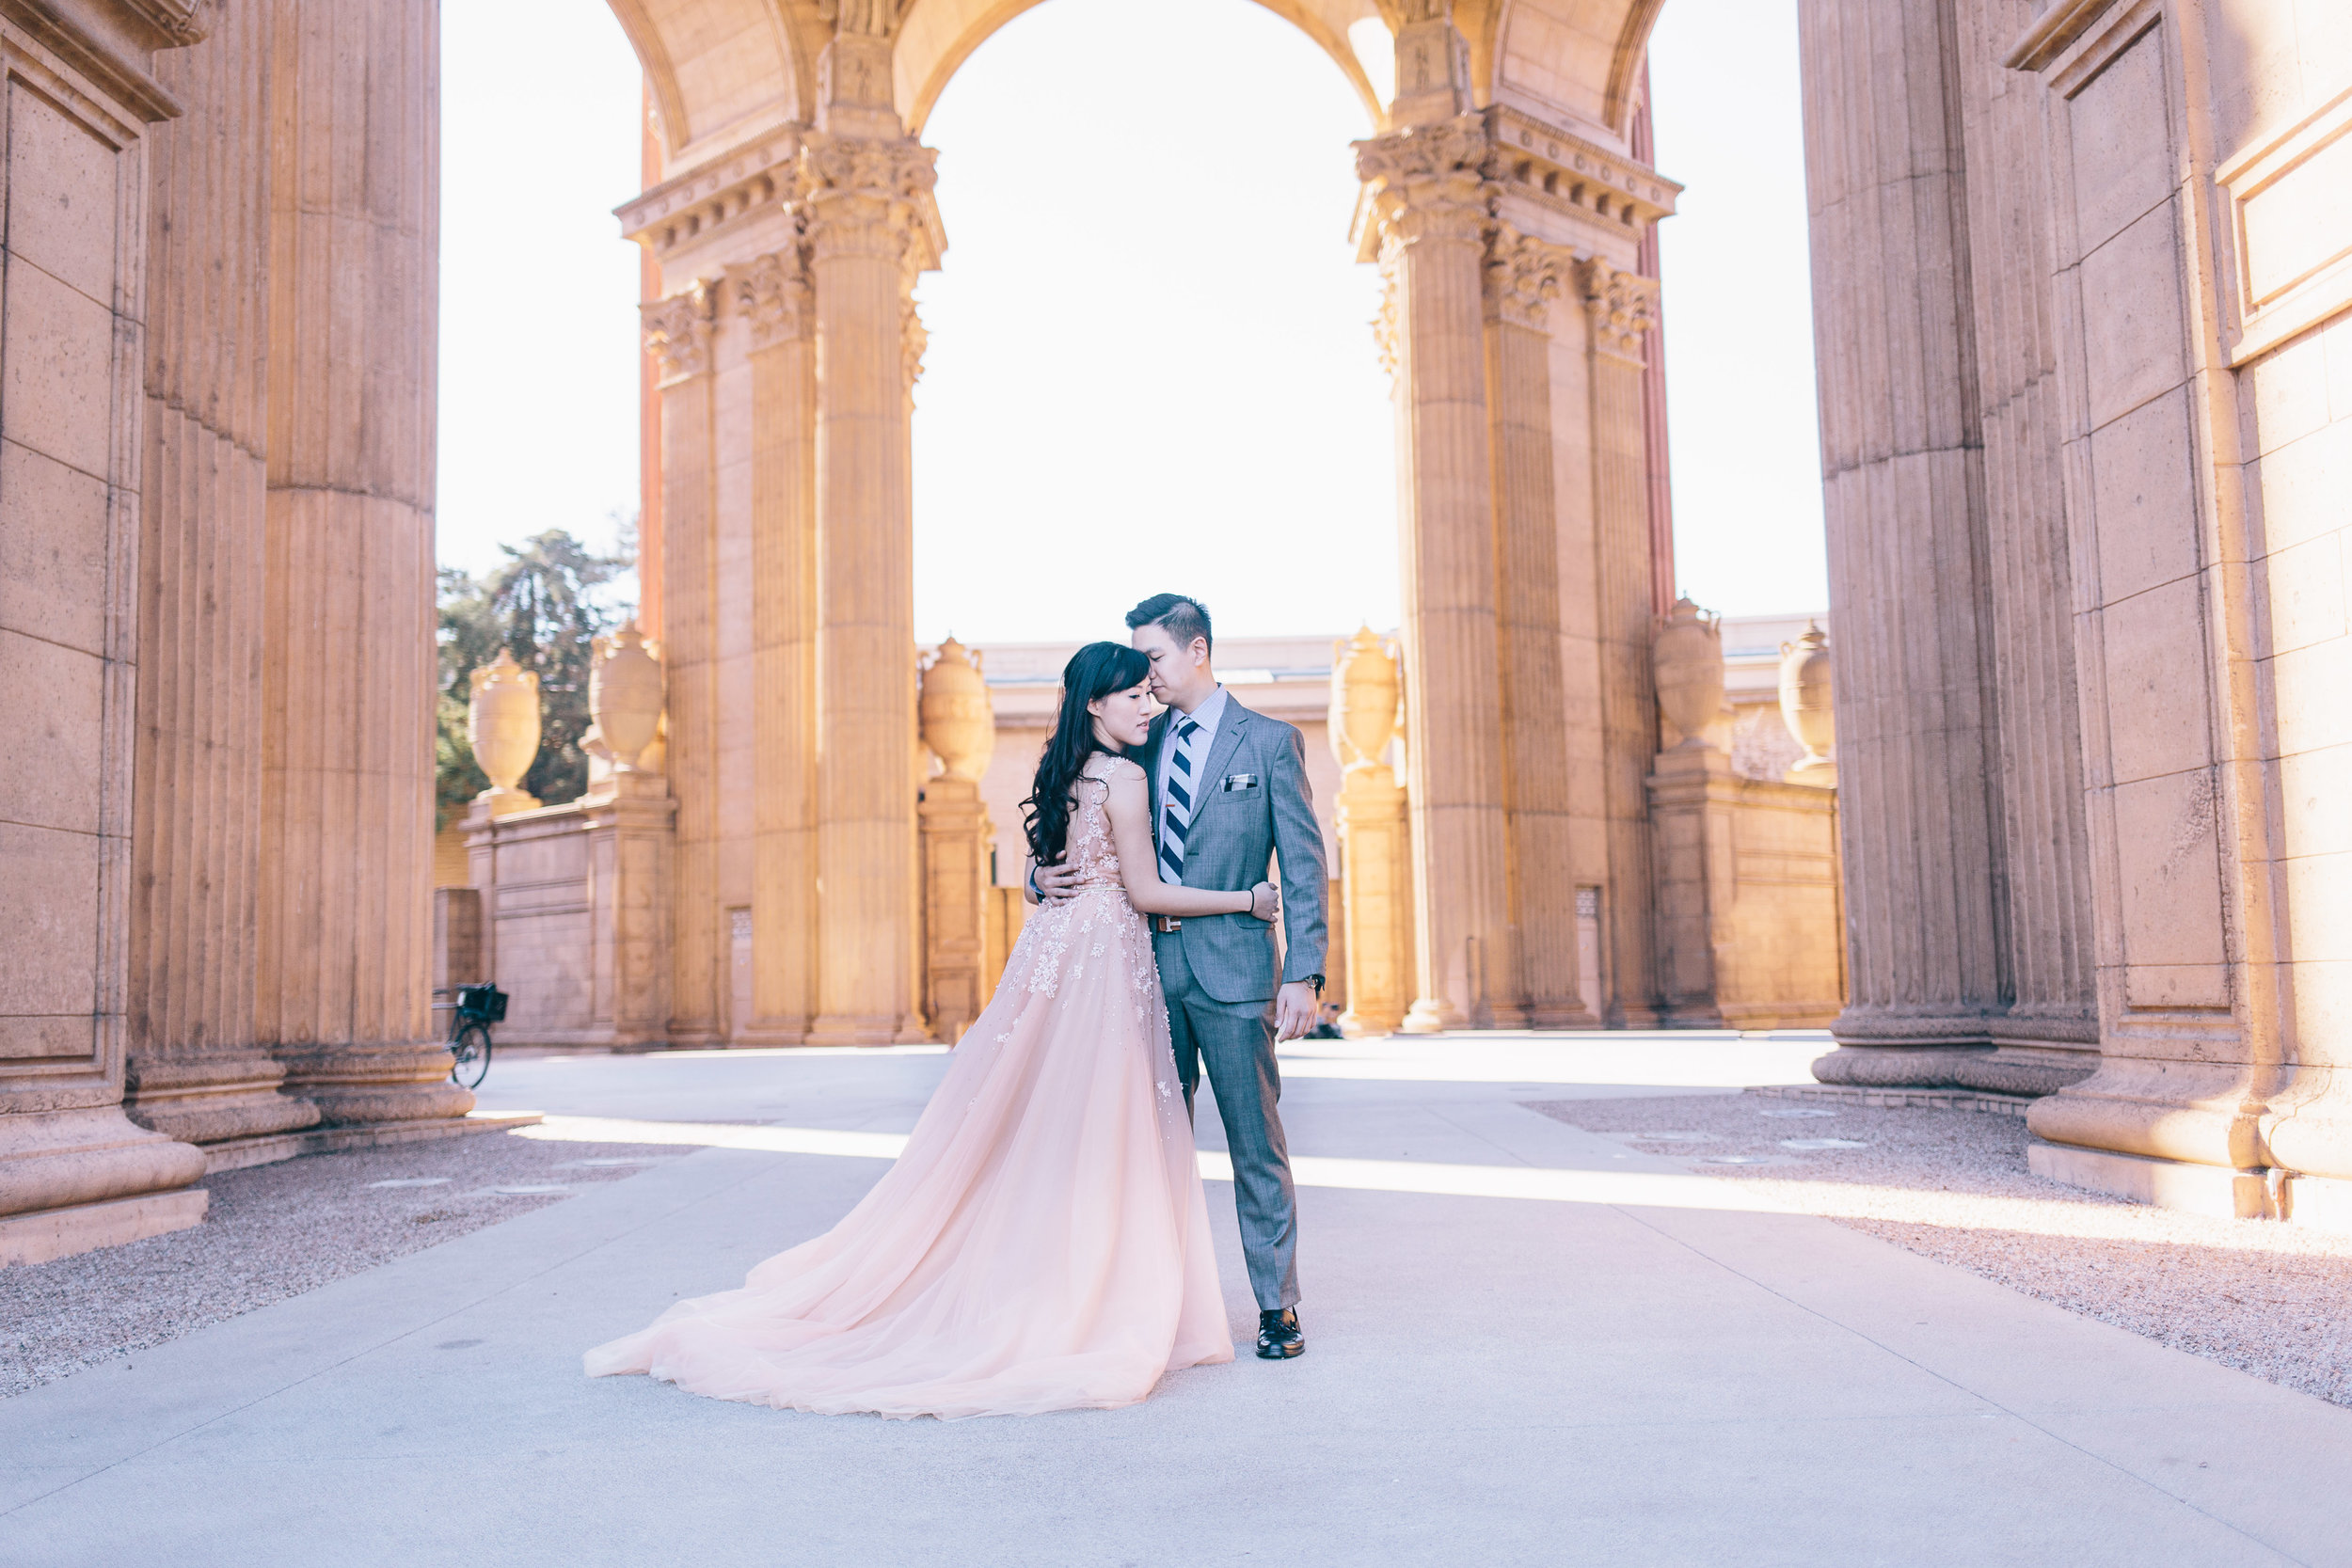 Best Engagement Photo Locations in San Francisco - Palace of Fine Arts Engagement Photos by JBJ Pictures (7).jpg